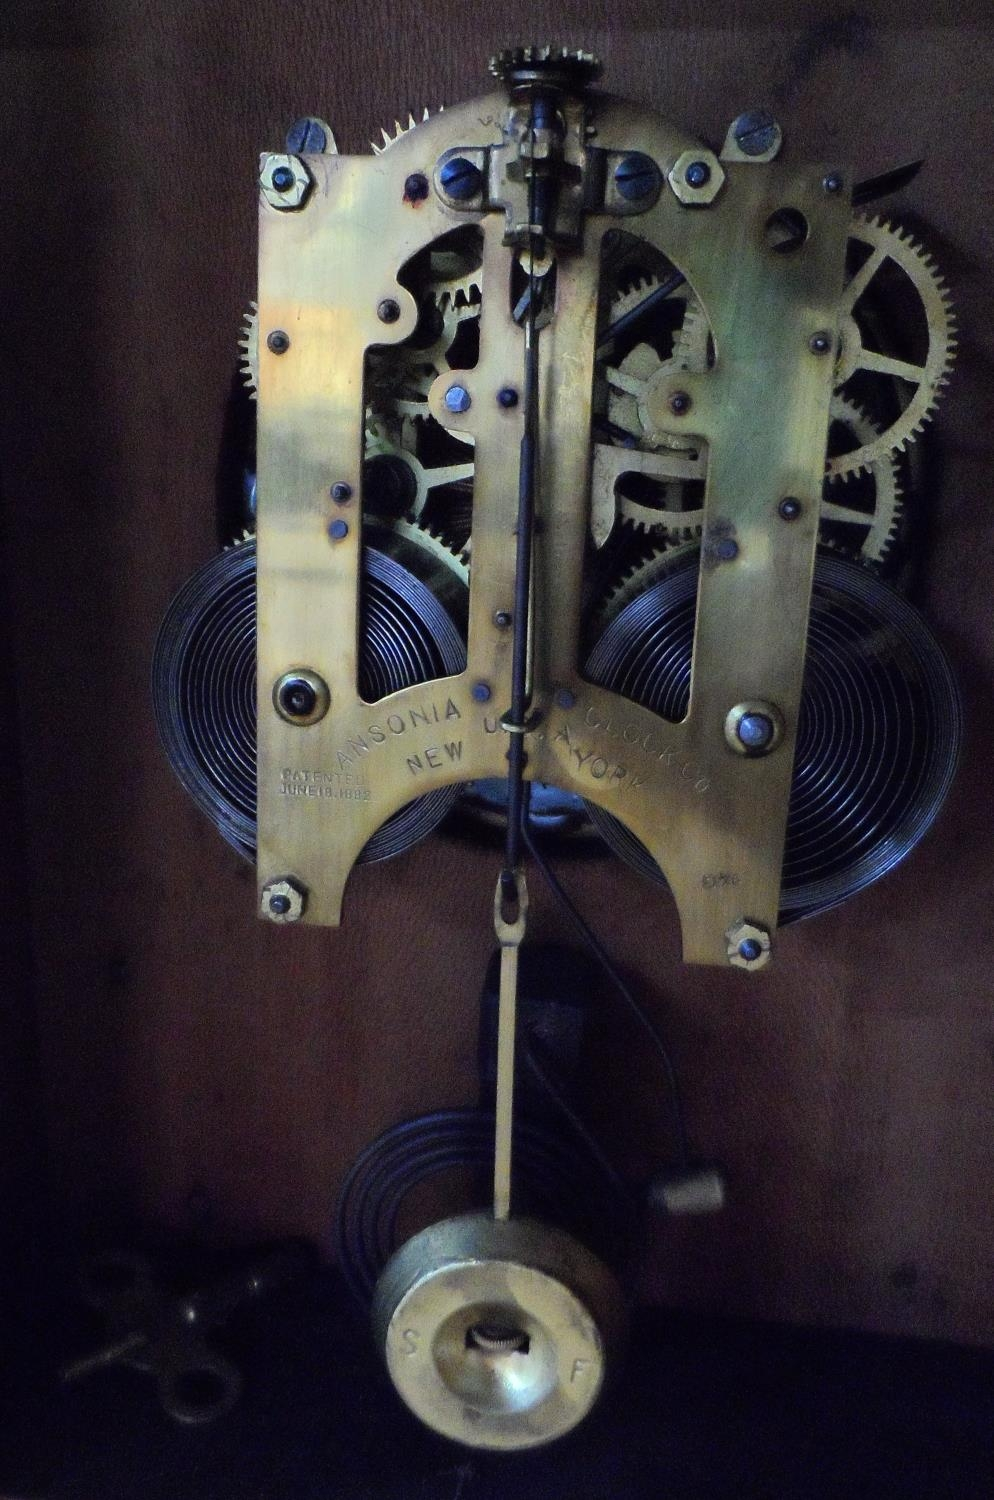 Ansonia Clock Co Eight Day Syria Mantel Clock with key - Image 4 of 7